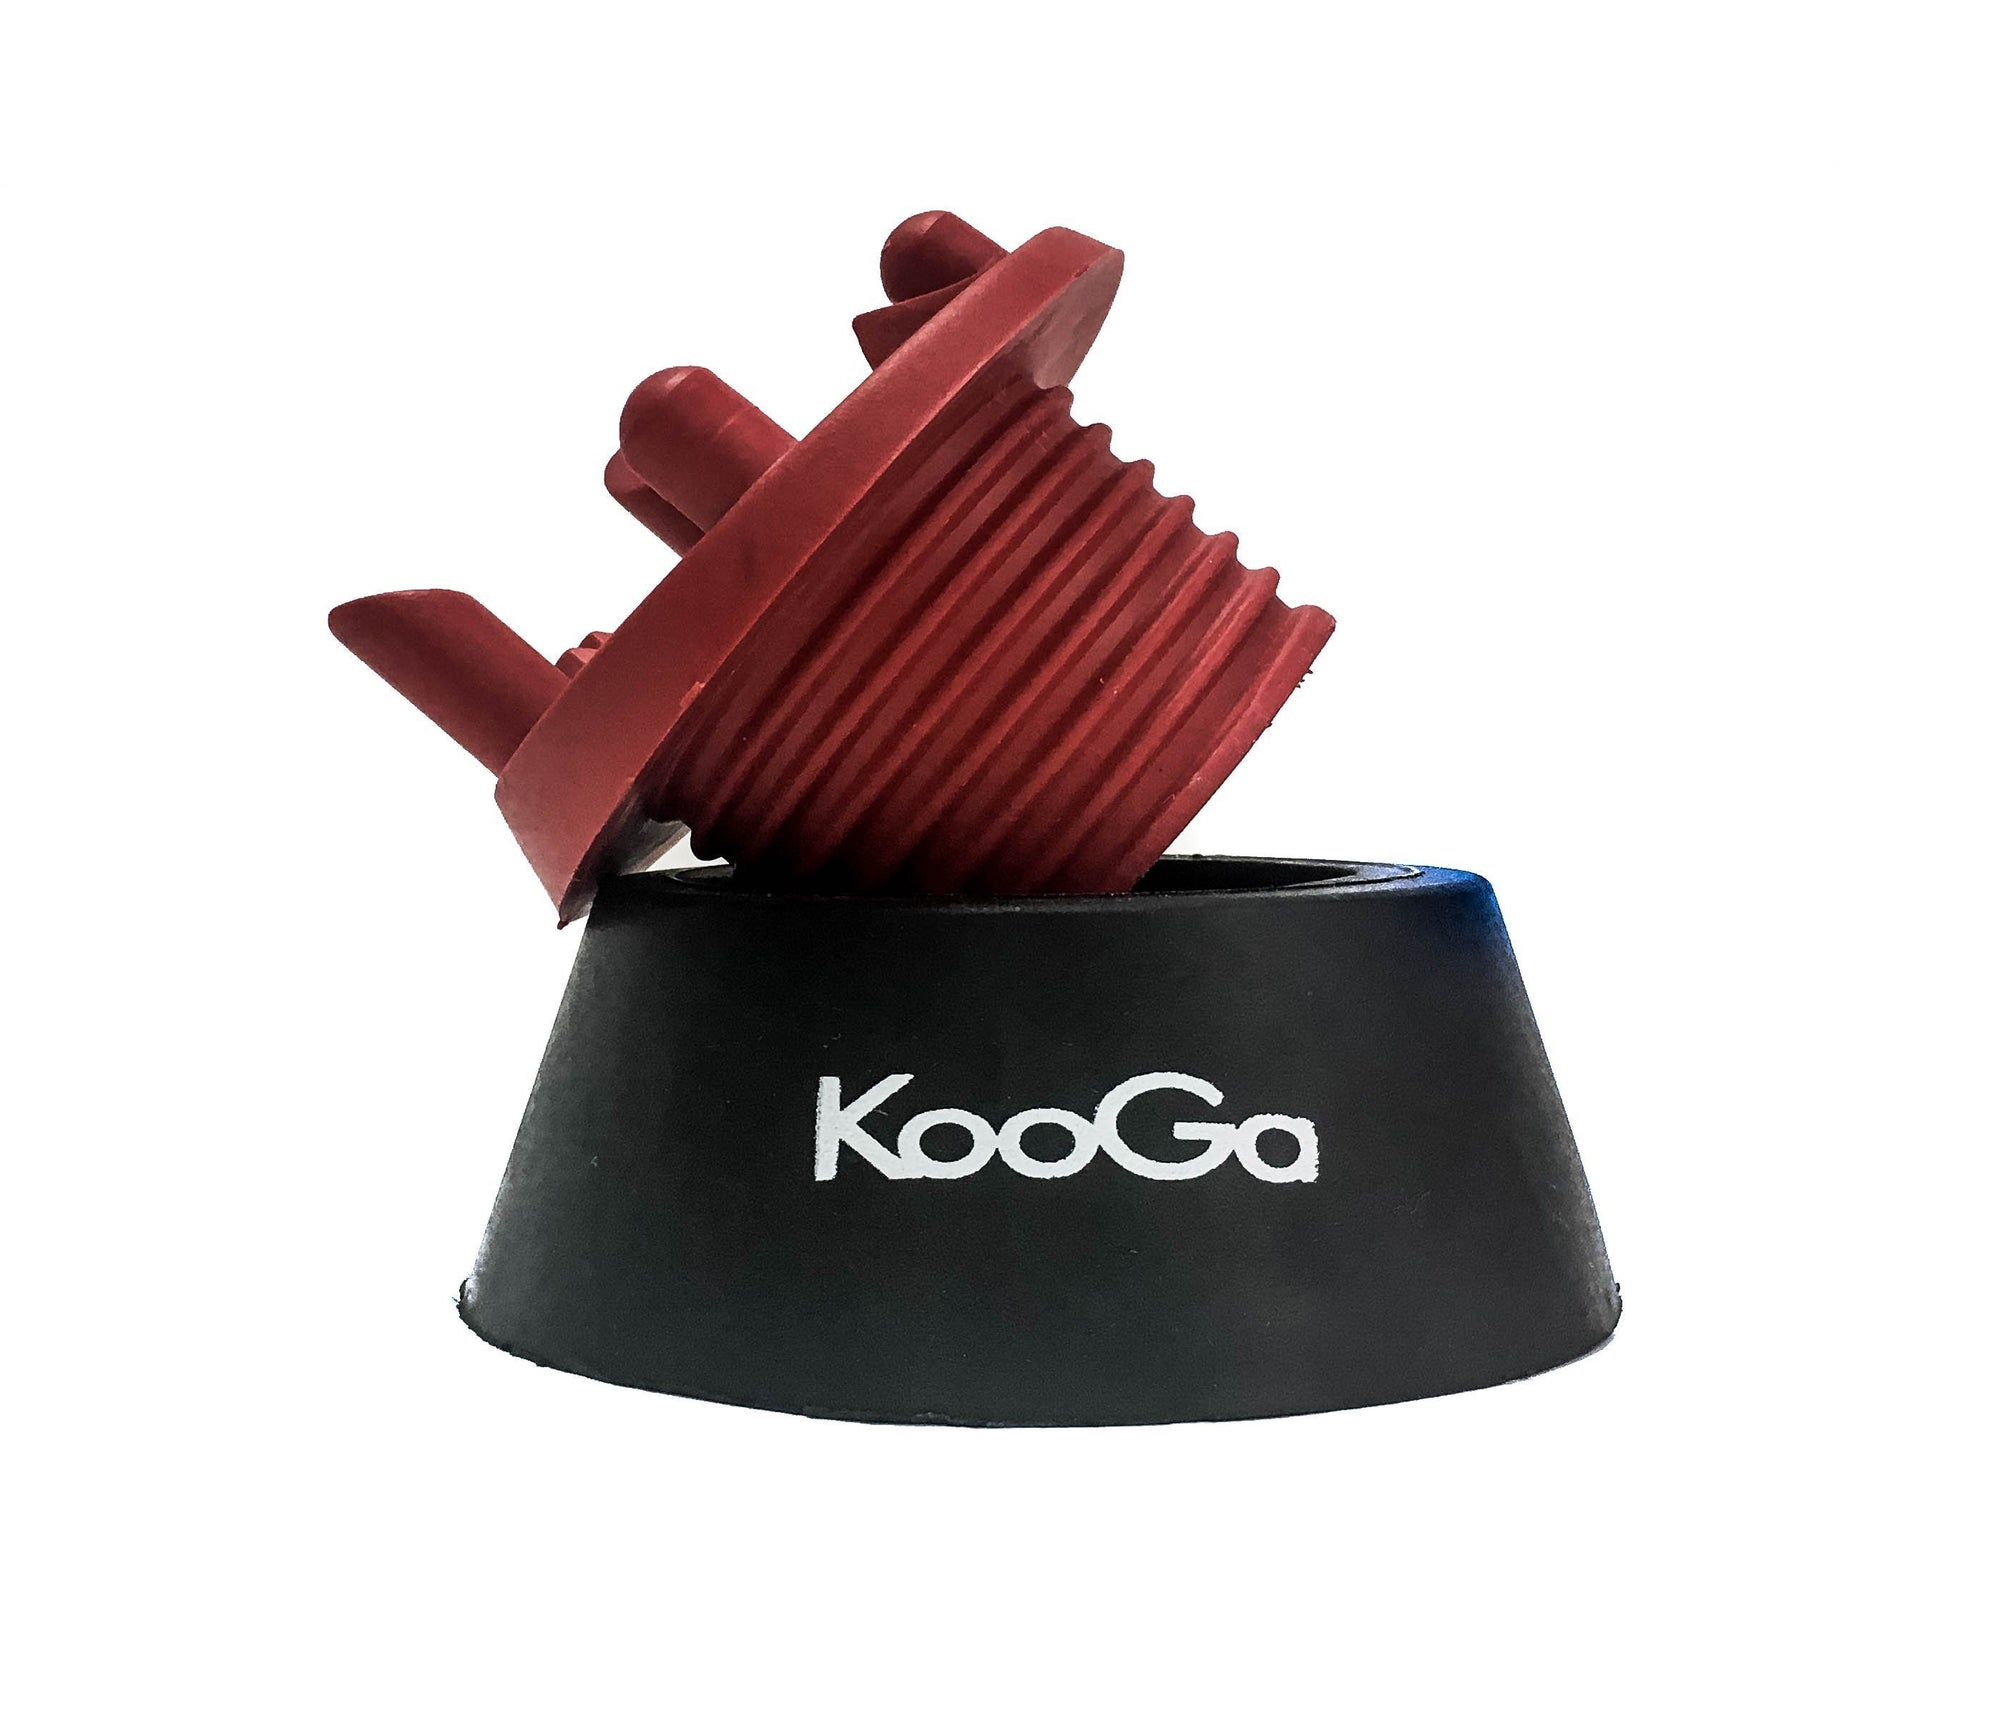 Rugby Balls - Kooga Adjustable Kicking Tee